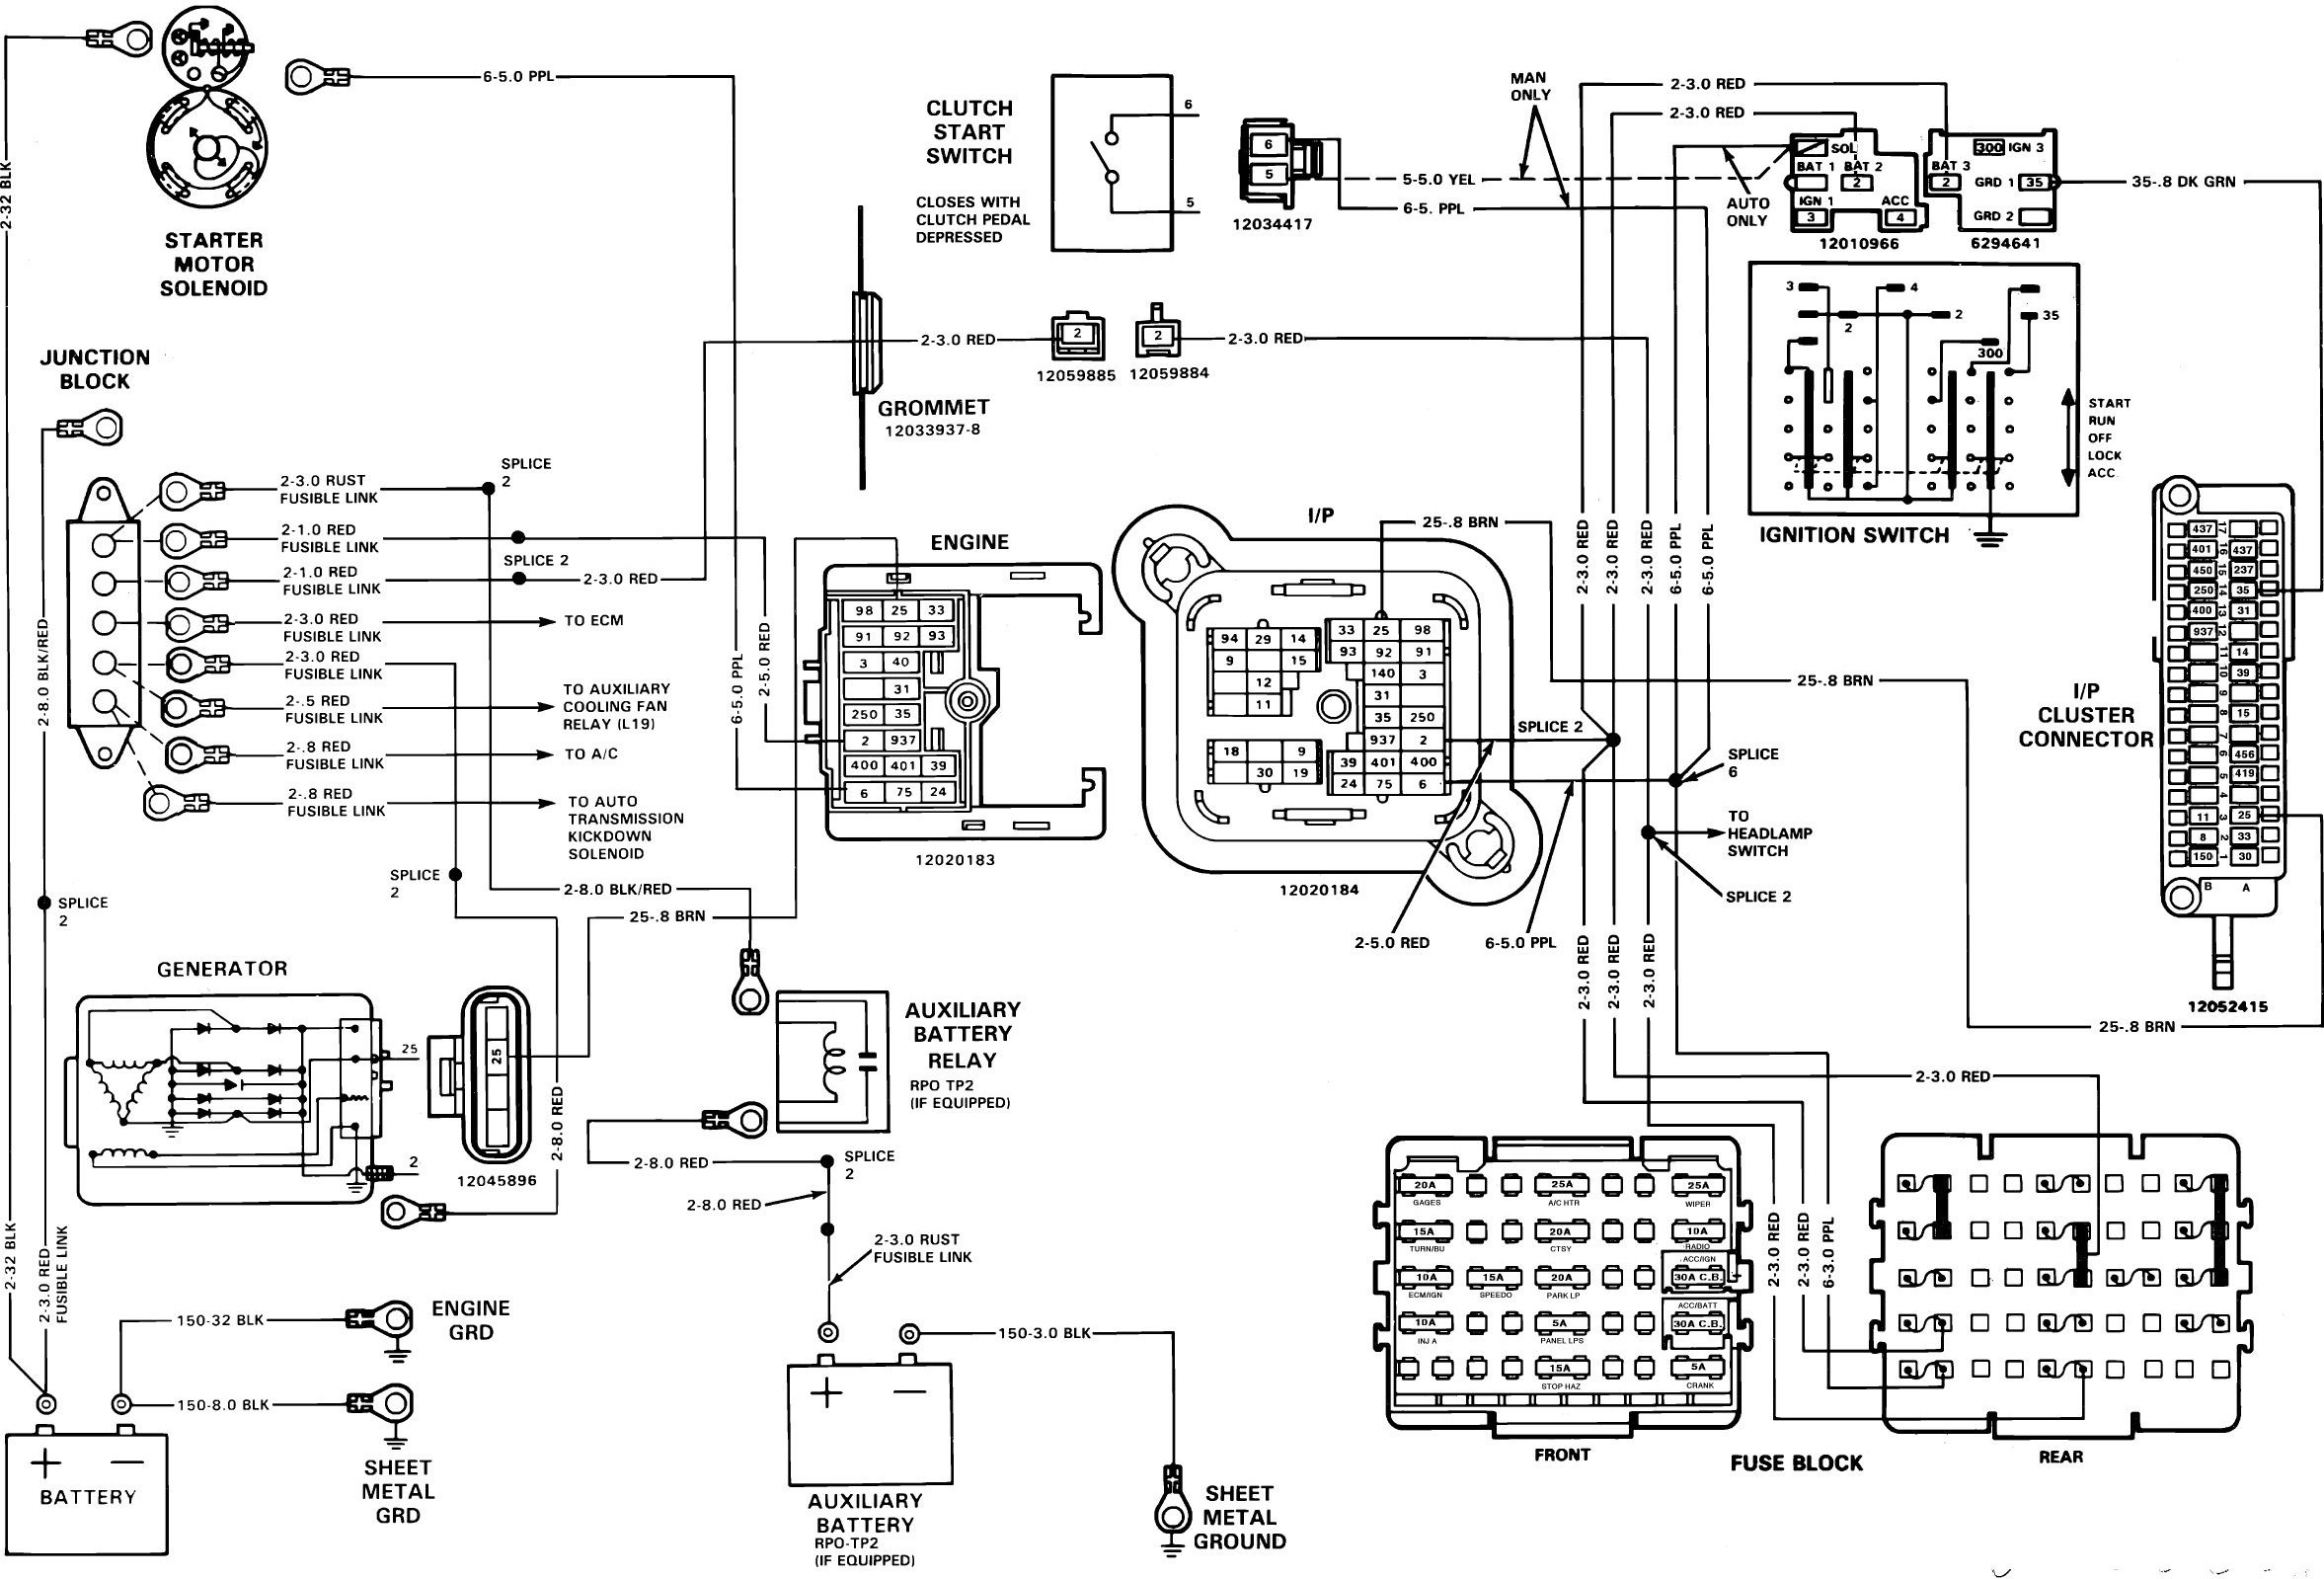 need the wiring diagram for a 1986 gmc sierra classic